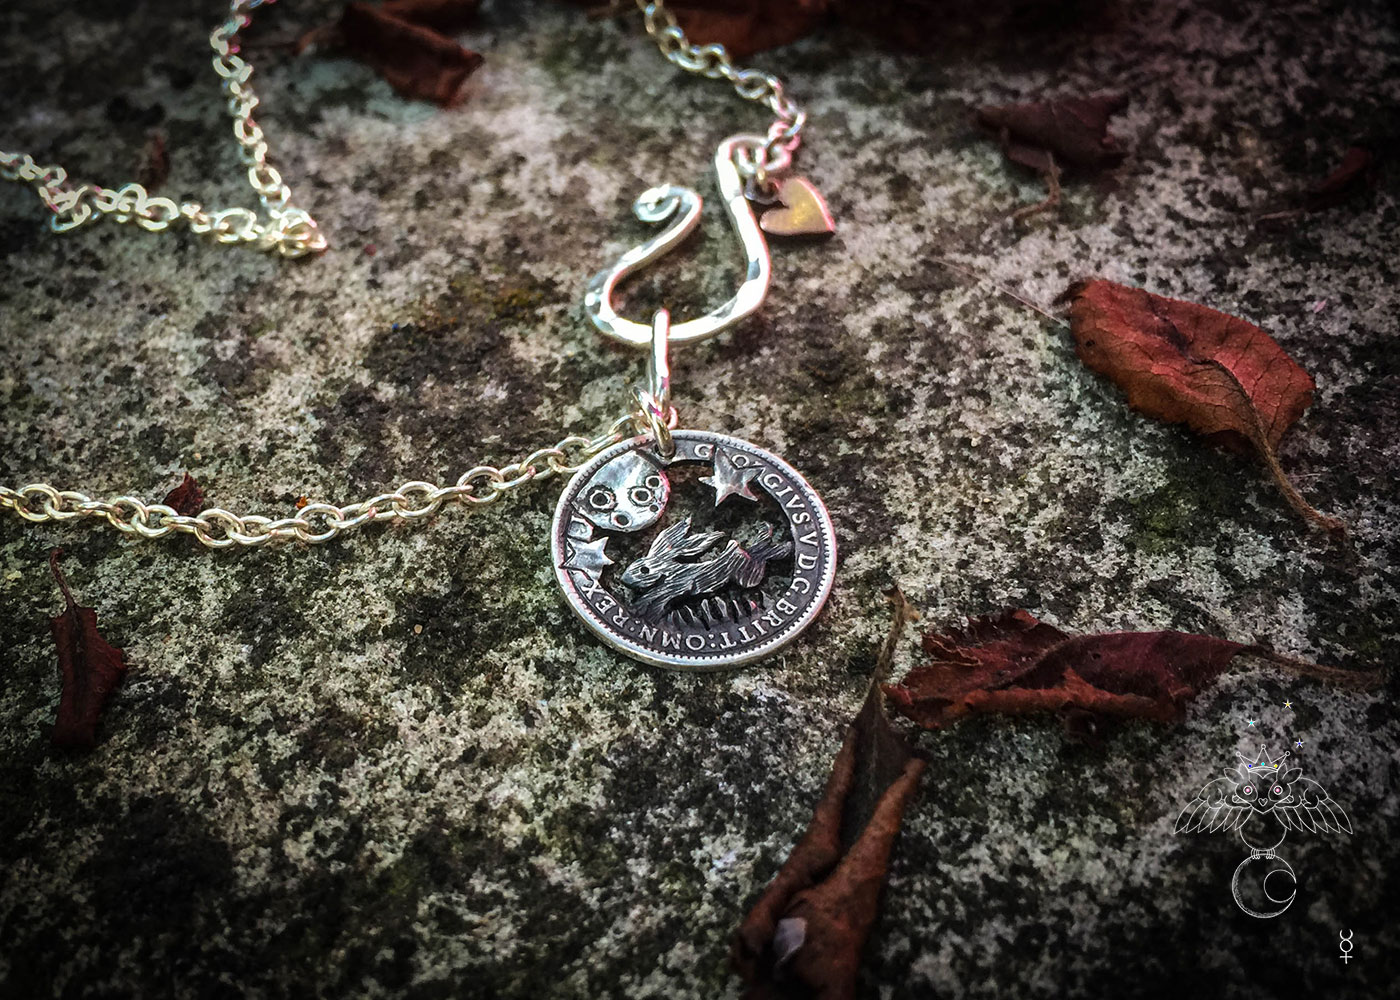 Leaping hare coin jewellery. Magical leaping hare silver necklace handcrafted and eco-conscious.